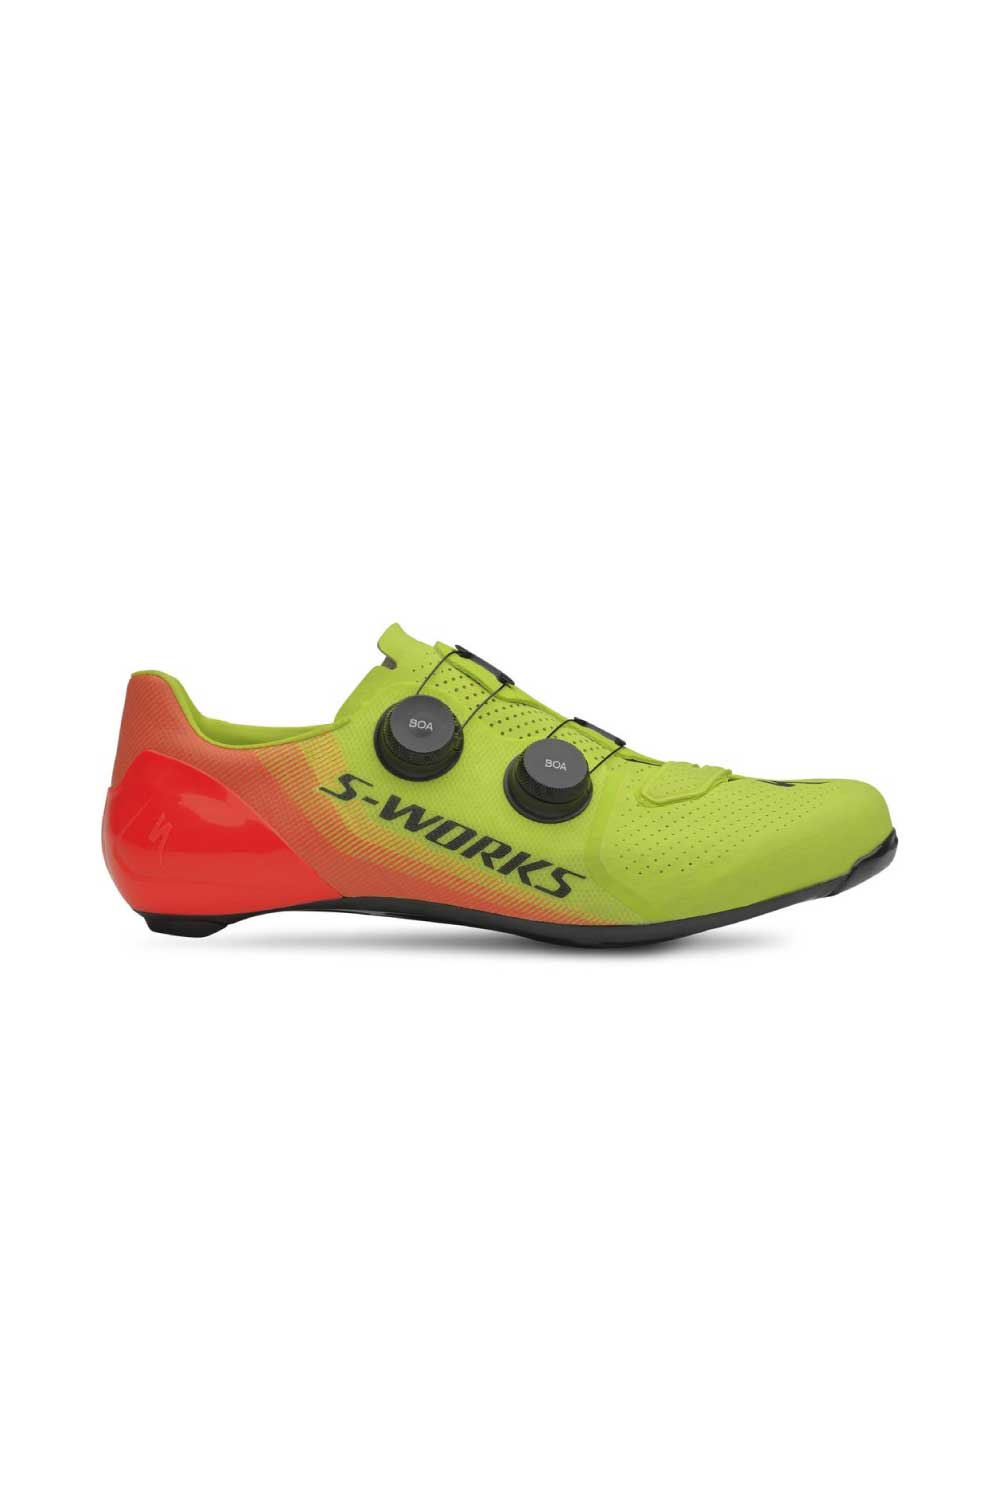 S-WORKS SW 7 ROAD SHOE LTD